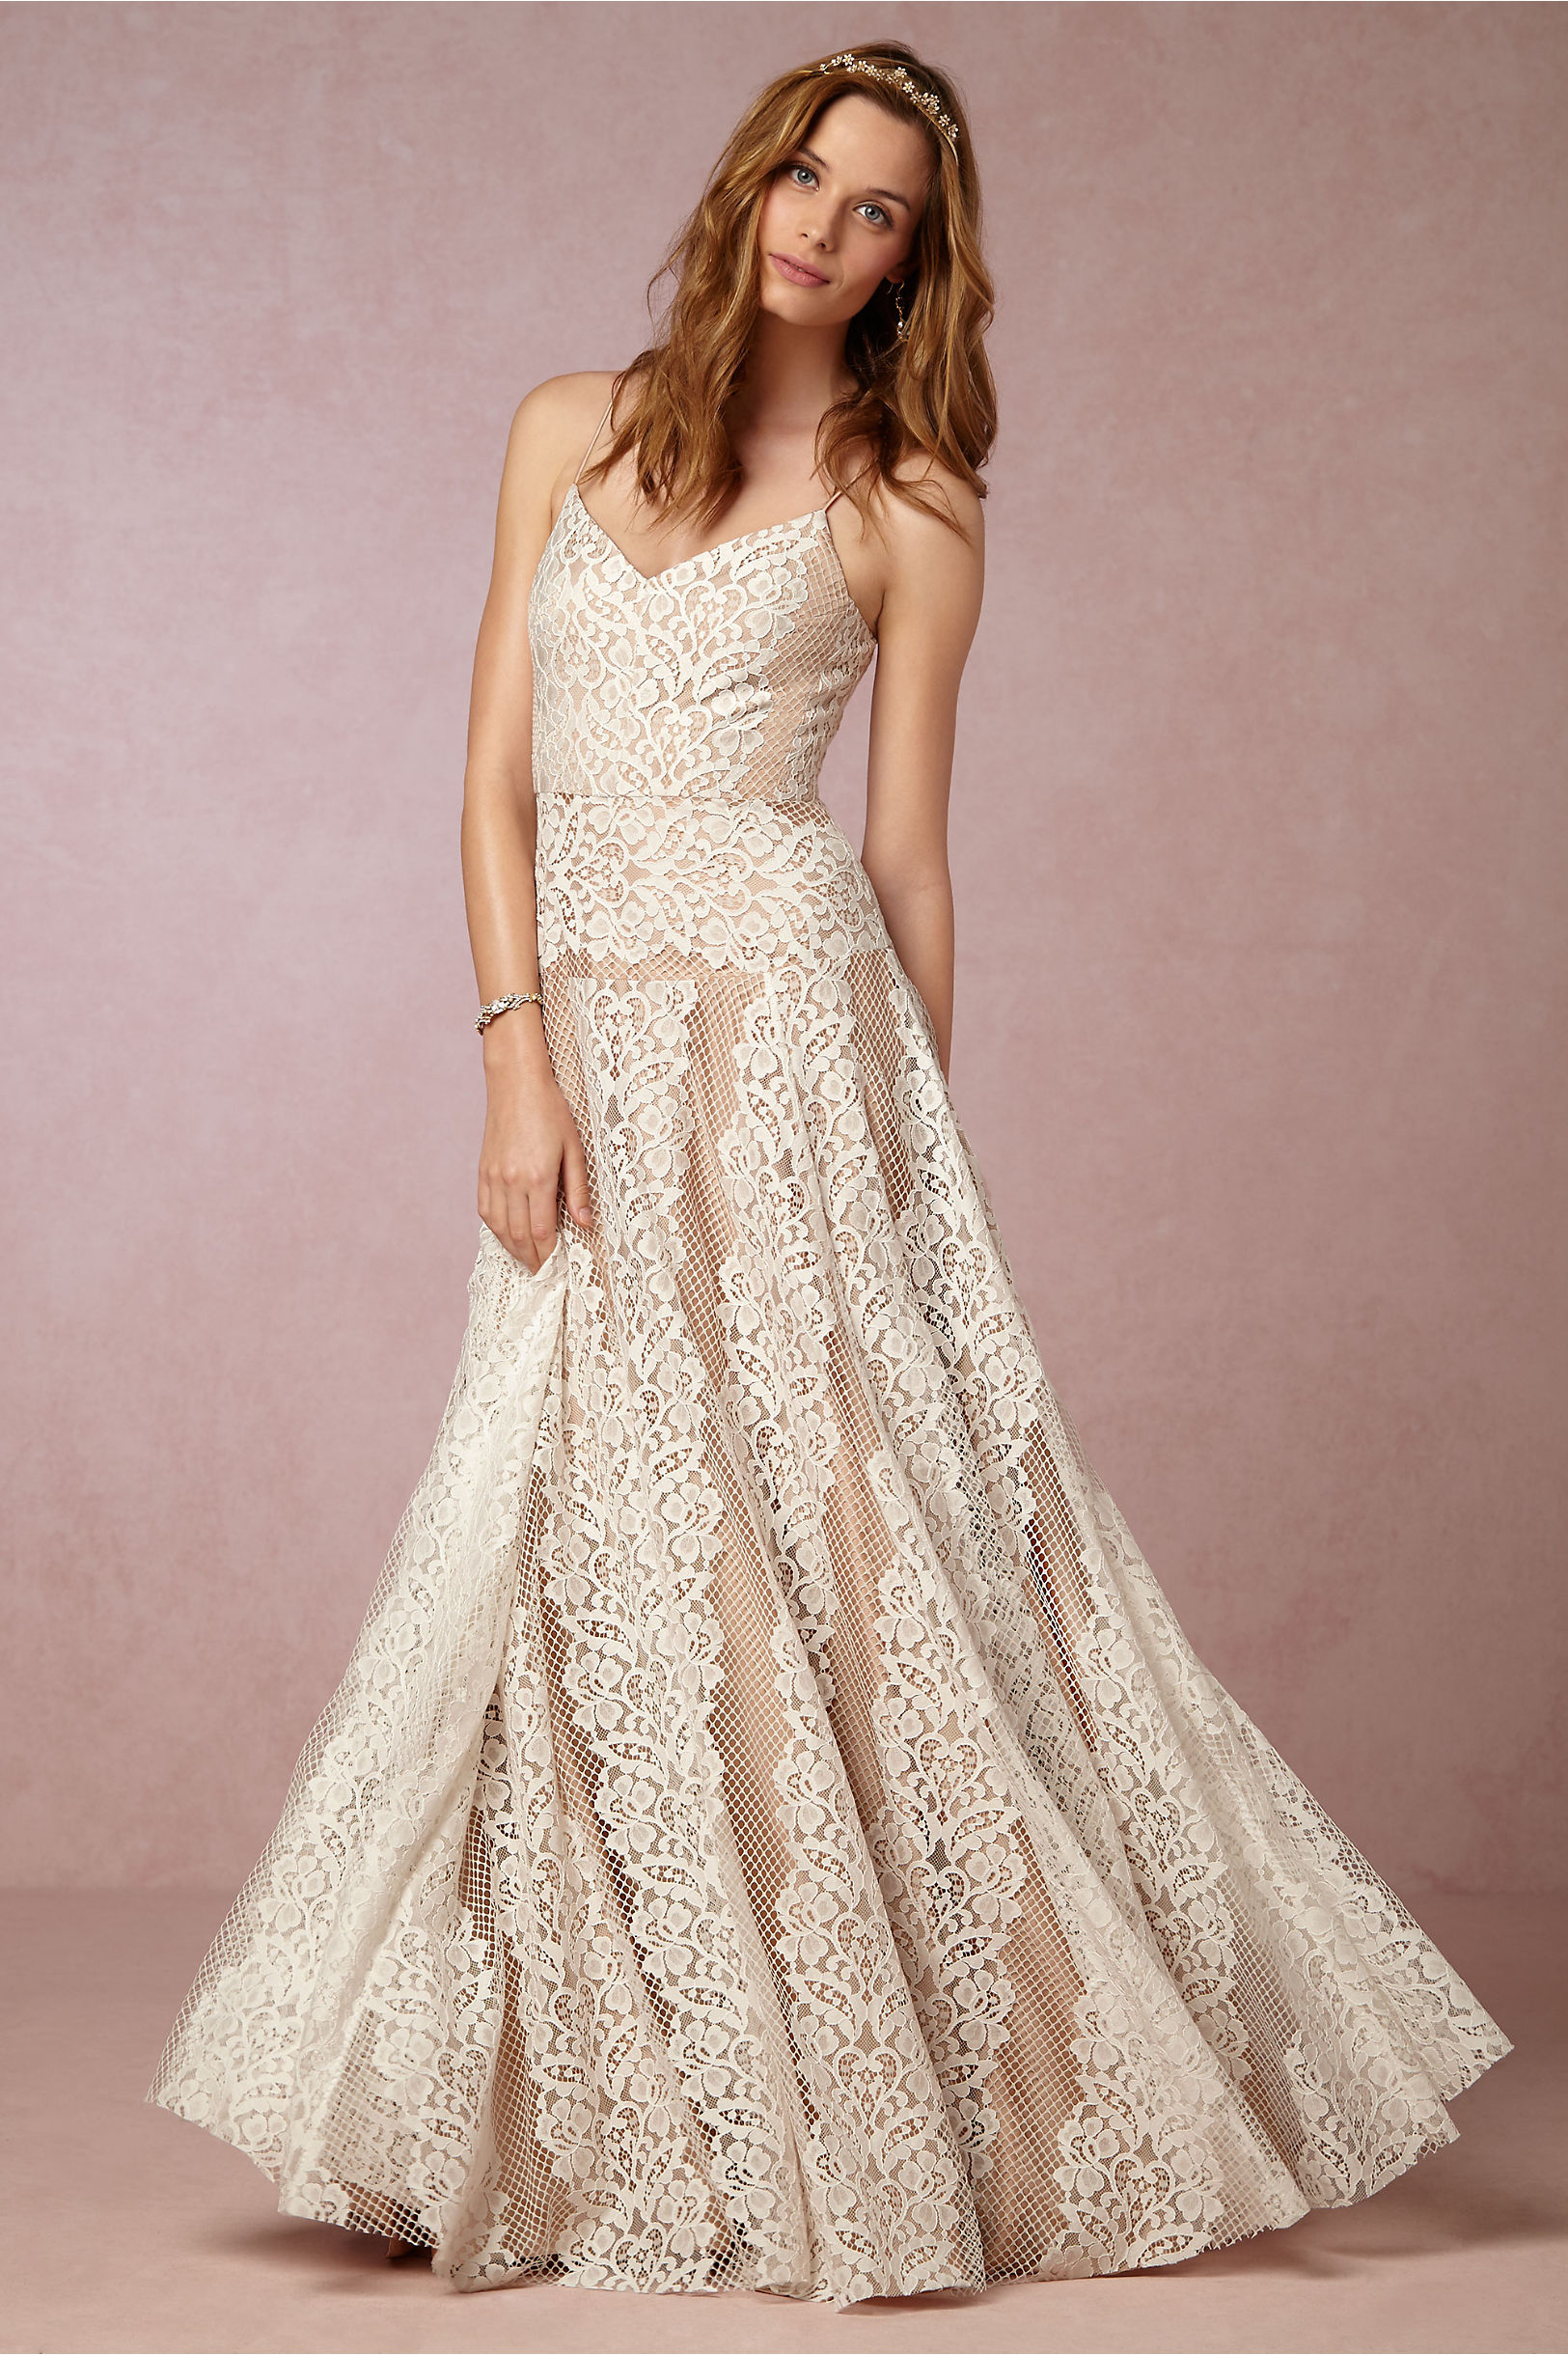 Enchanting Bhldn Rococo Gown Picture Collection - Images for wedding ...